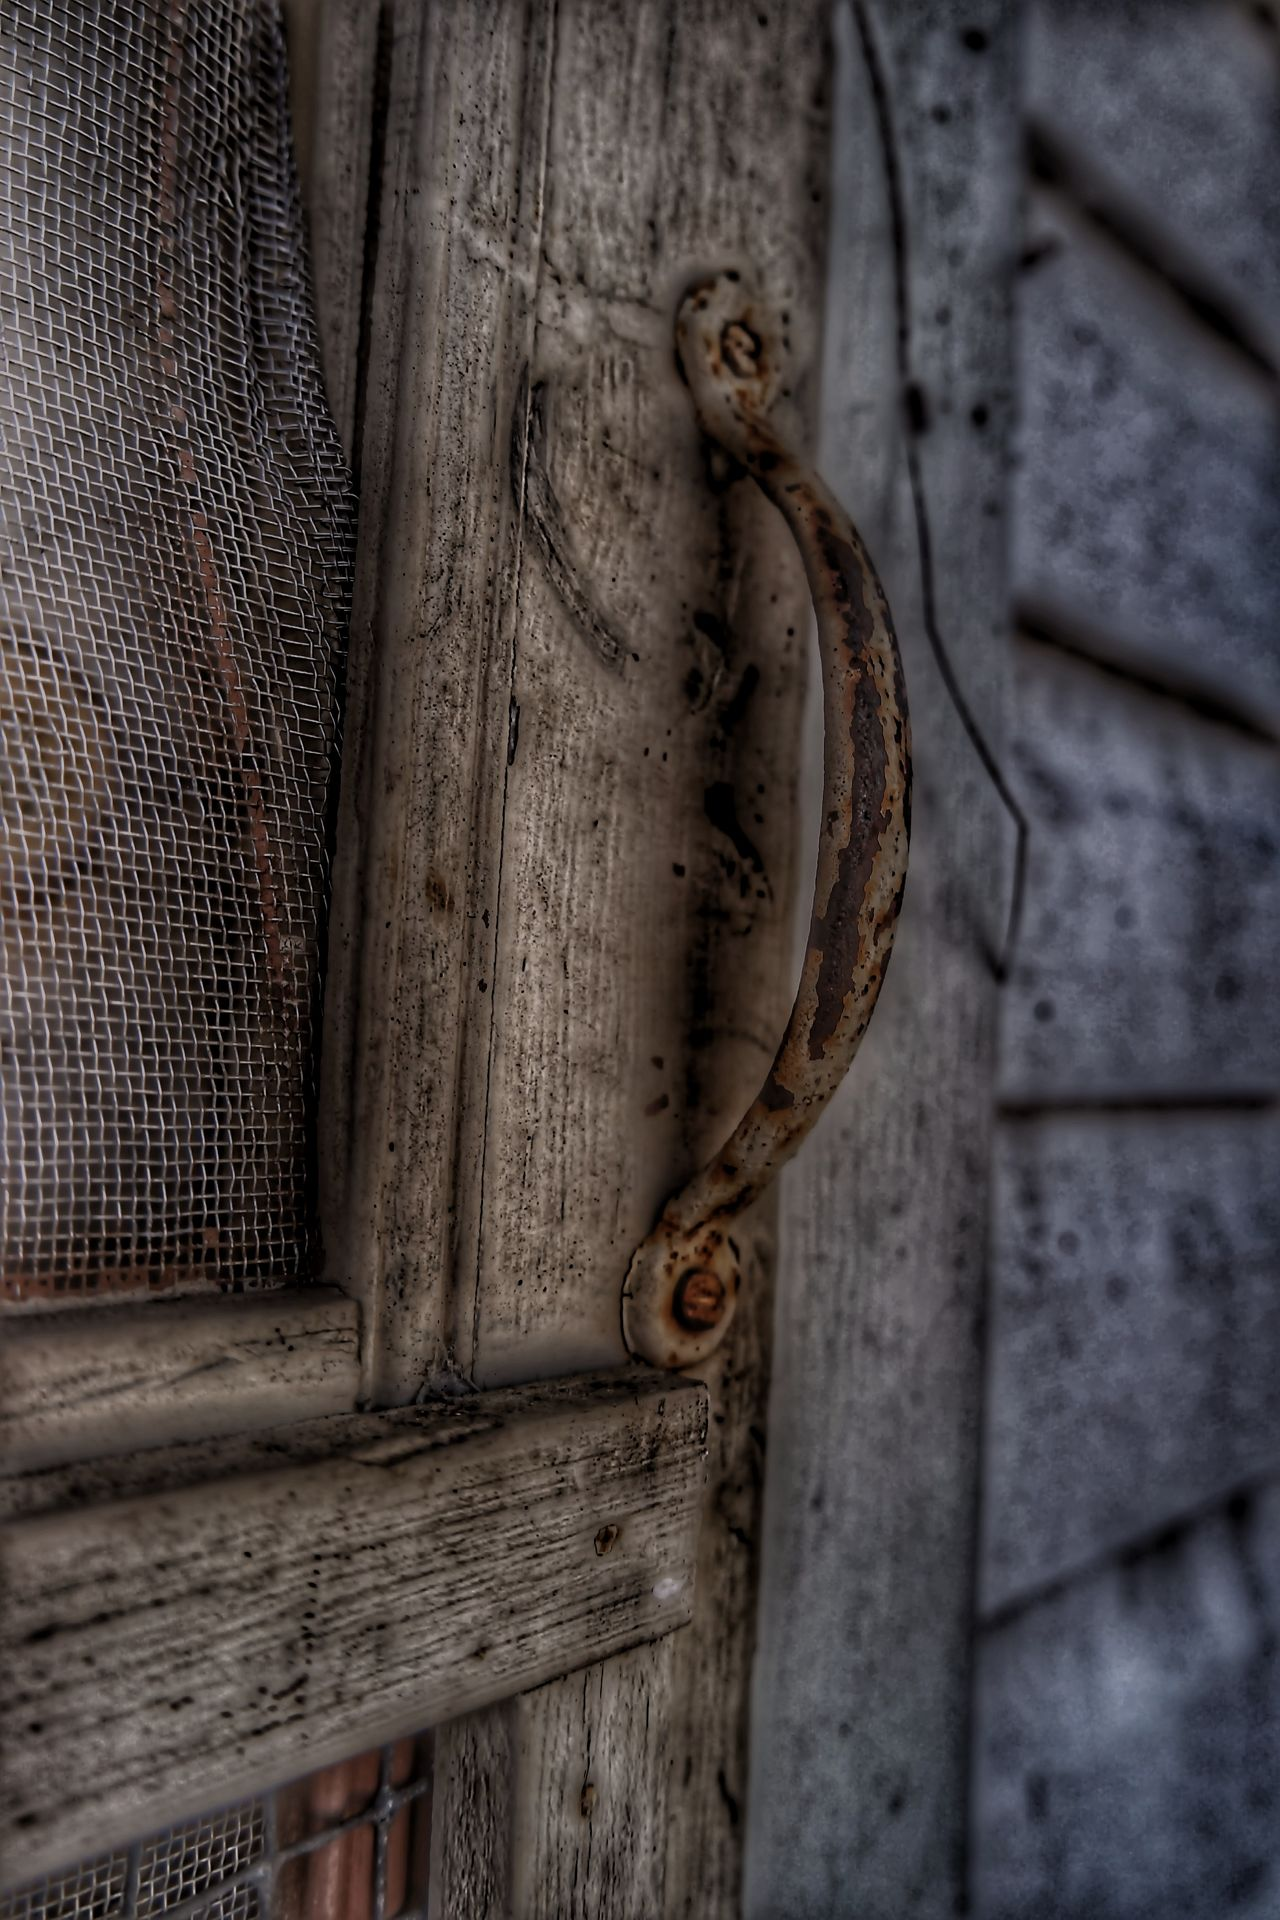 Wood - Material Close-up Outdoors Building Exterior Urbex Enjoying Life Urbexphotography EyeEm Gallery EyeEmBestEdits EyeEm Best Shots EyeEmBestPics Eye4photography  Hello World EyeEm Team Check This Out Notes From The Underground Abandoned America No People Me, My Camera And I EyeEm Best Edits Abandoned & Derelict Architecture Hdr_pics Lesbian Girlswholikegirls